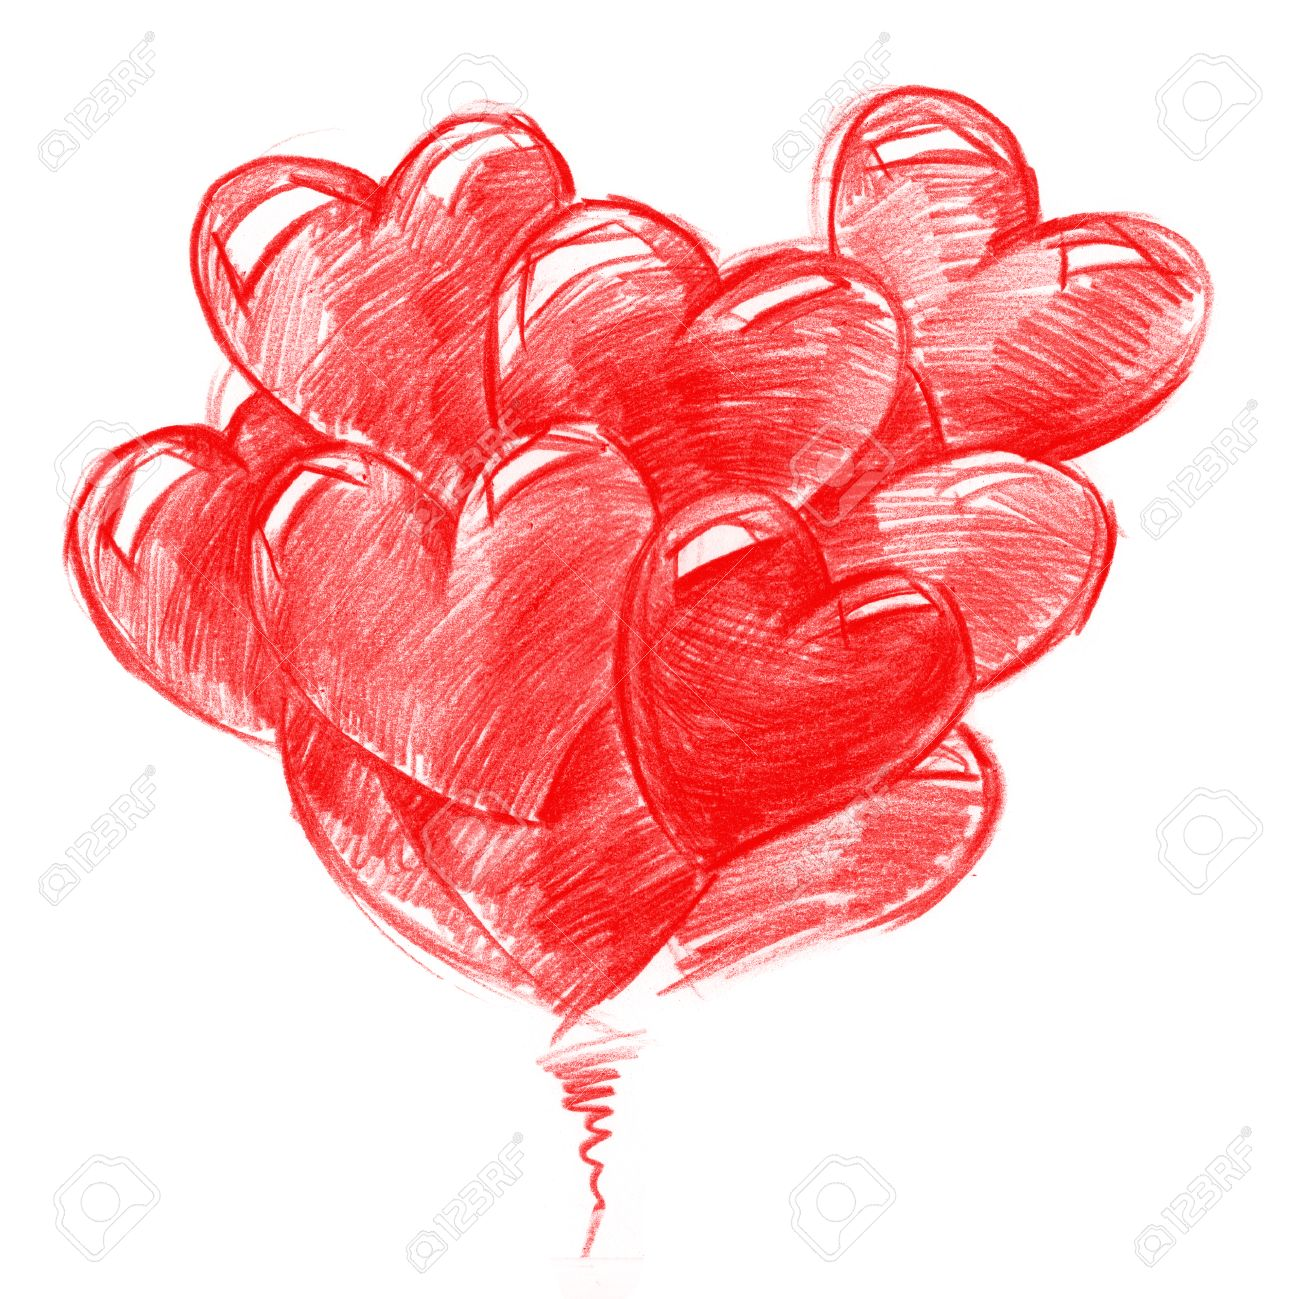 Red Balloons In The Shape Of Hearts For Valentines Daypencil